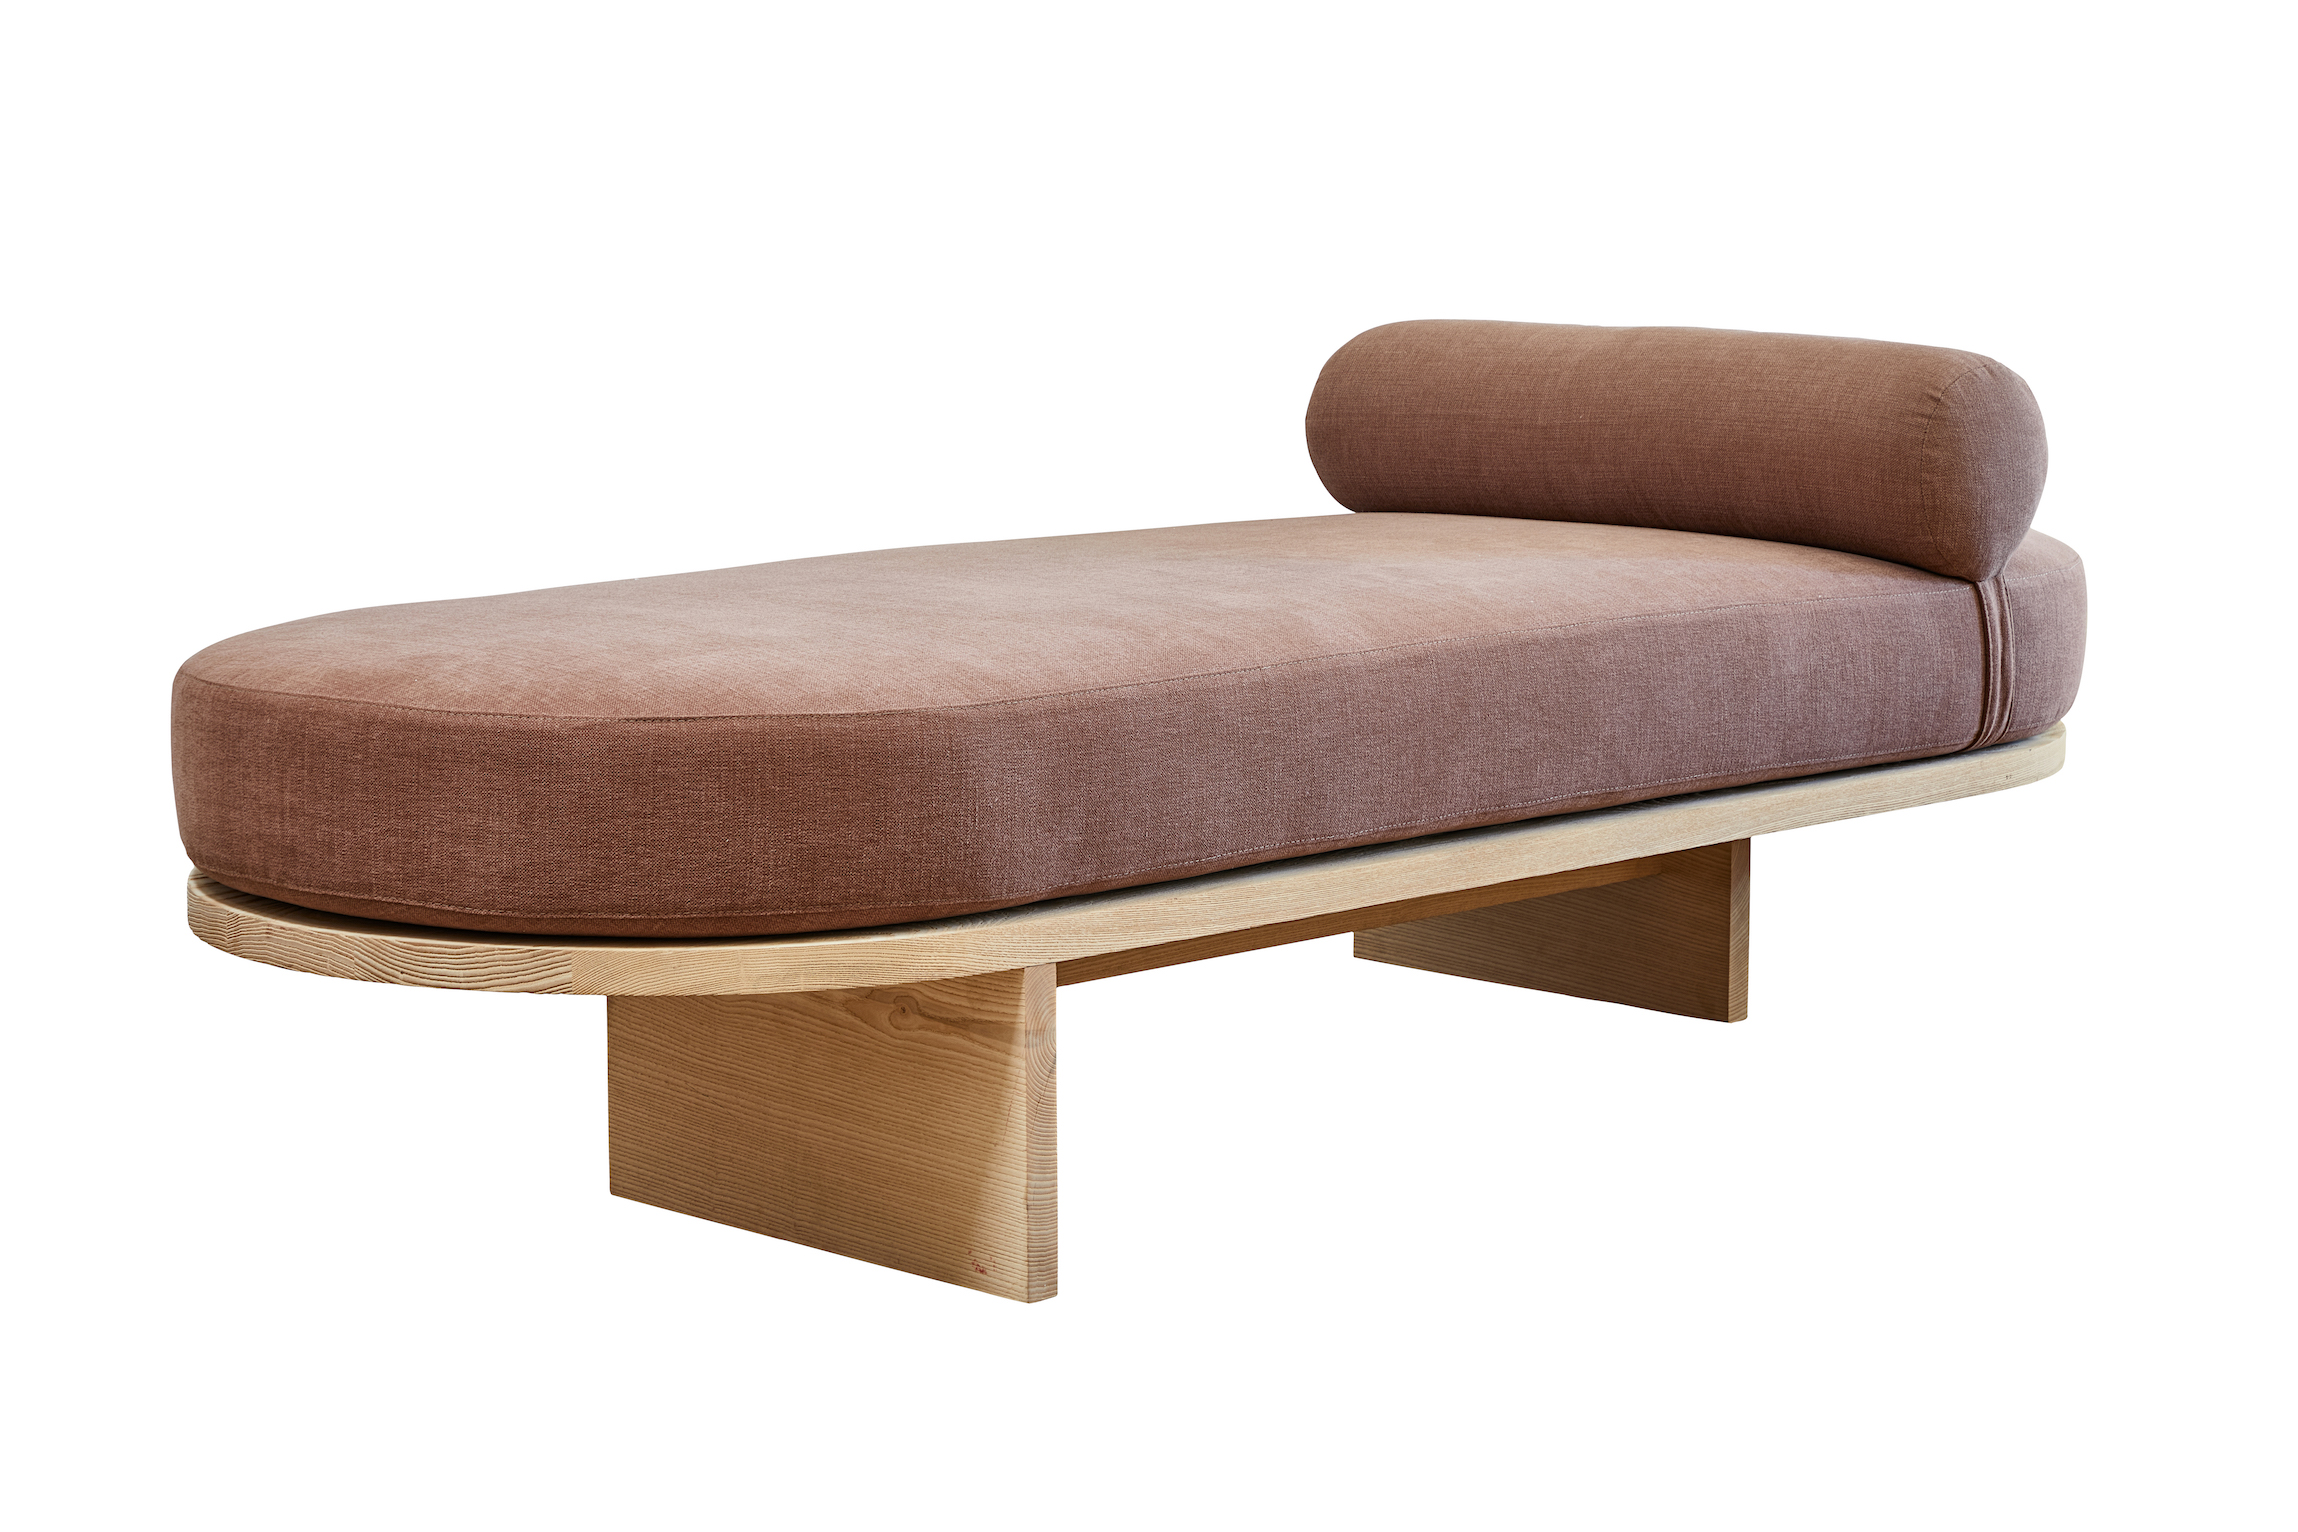 MOJAVE DAYBED (1).jpg